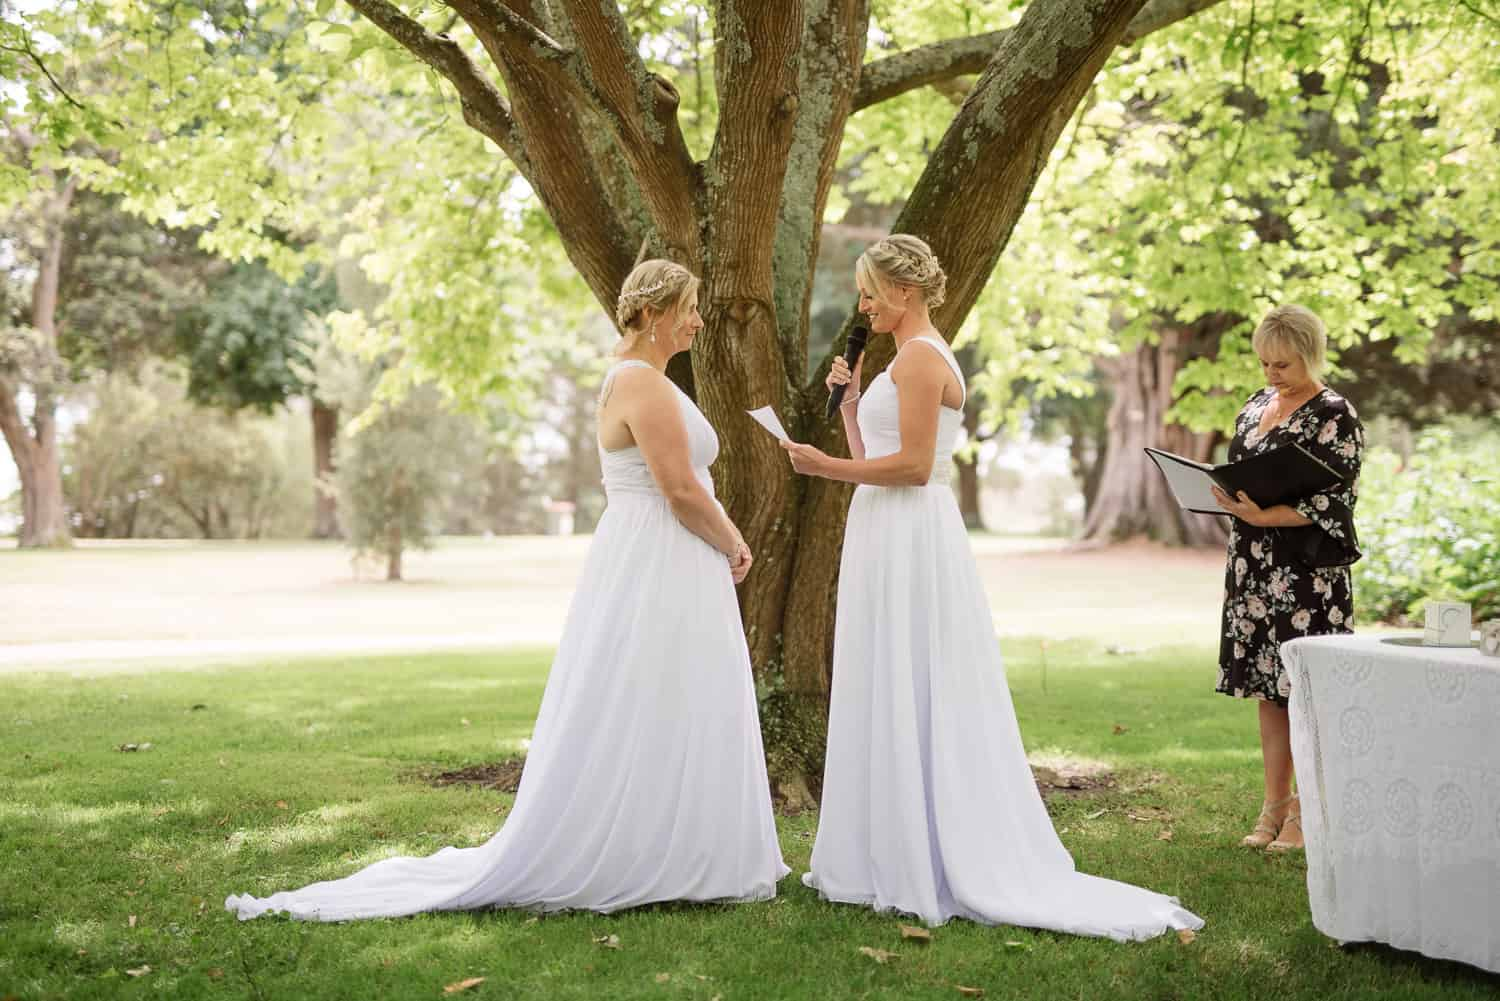 Same sex wedding at Colac Botanic gardens